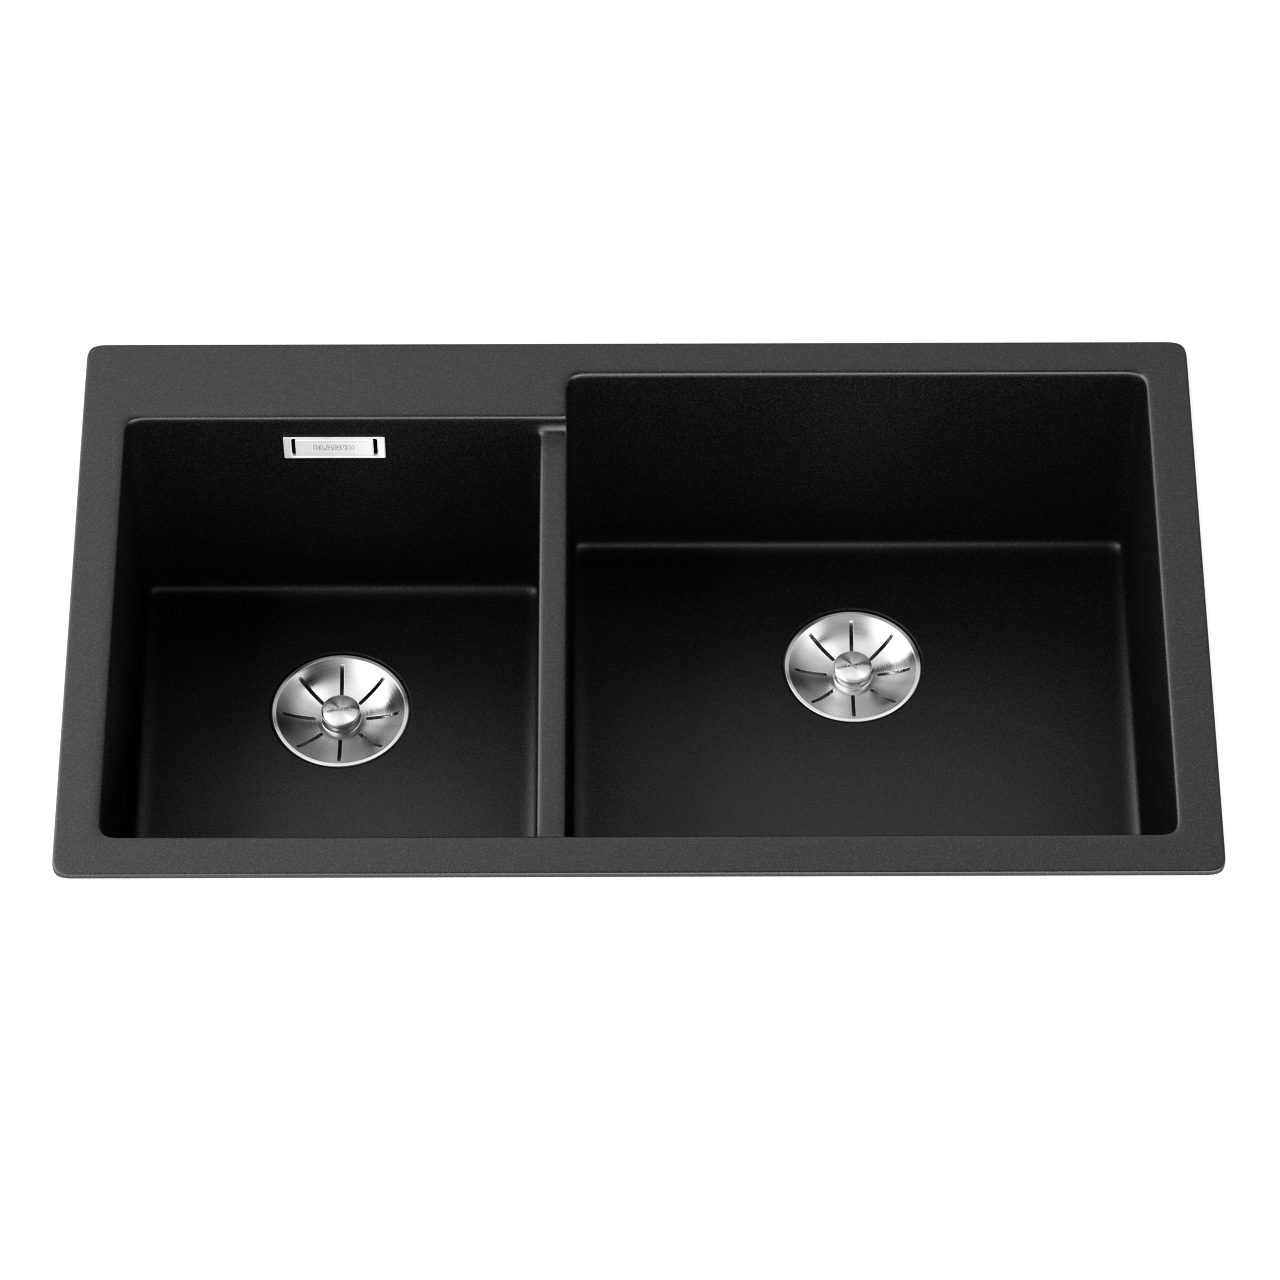 Pleon 9 Kitchen Sink by Blanco